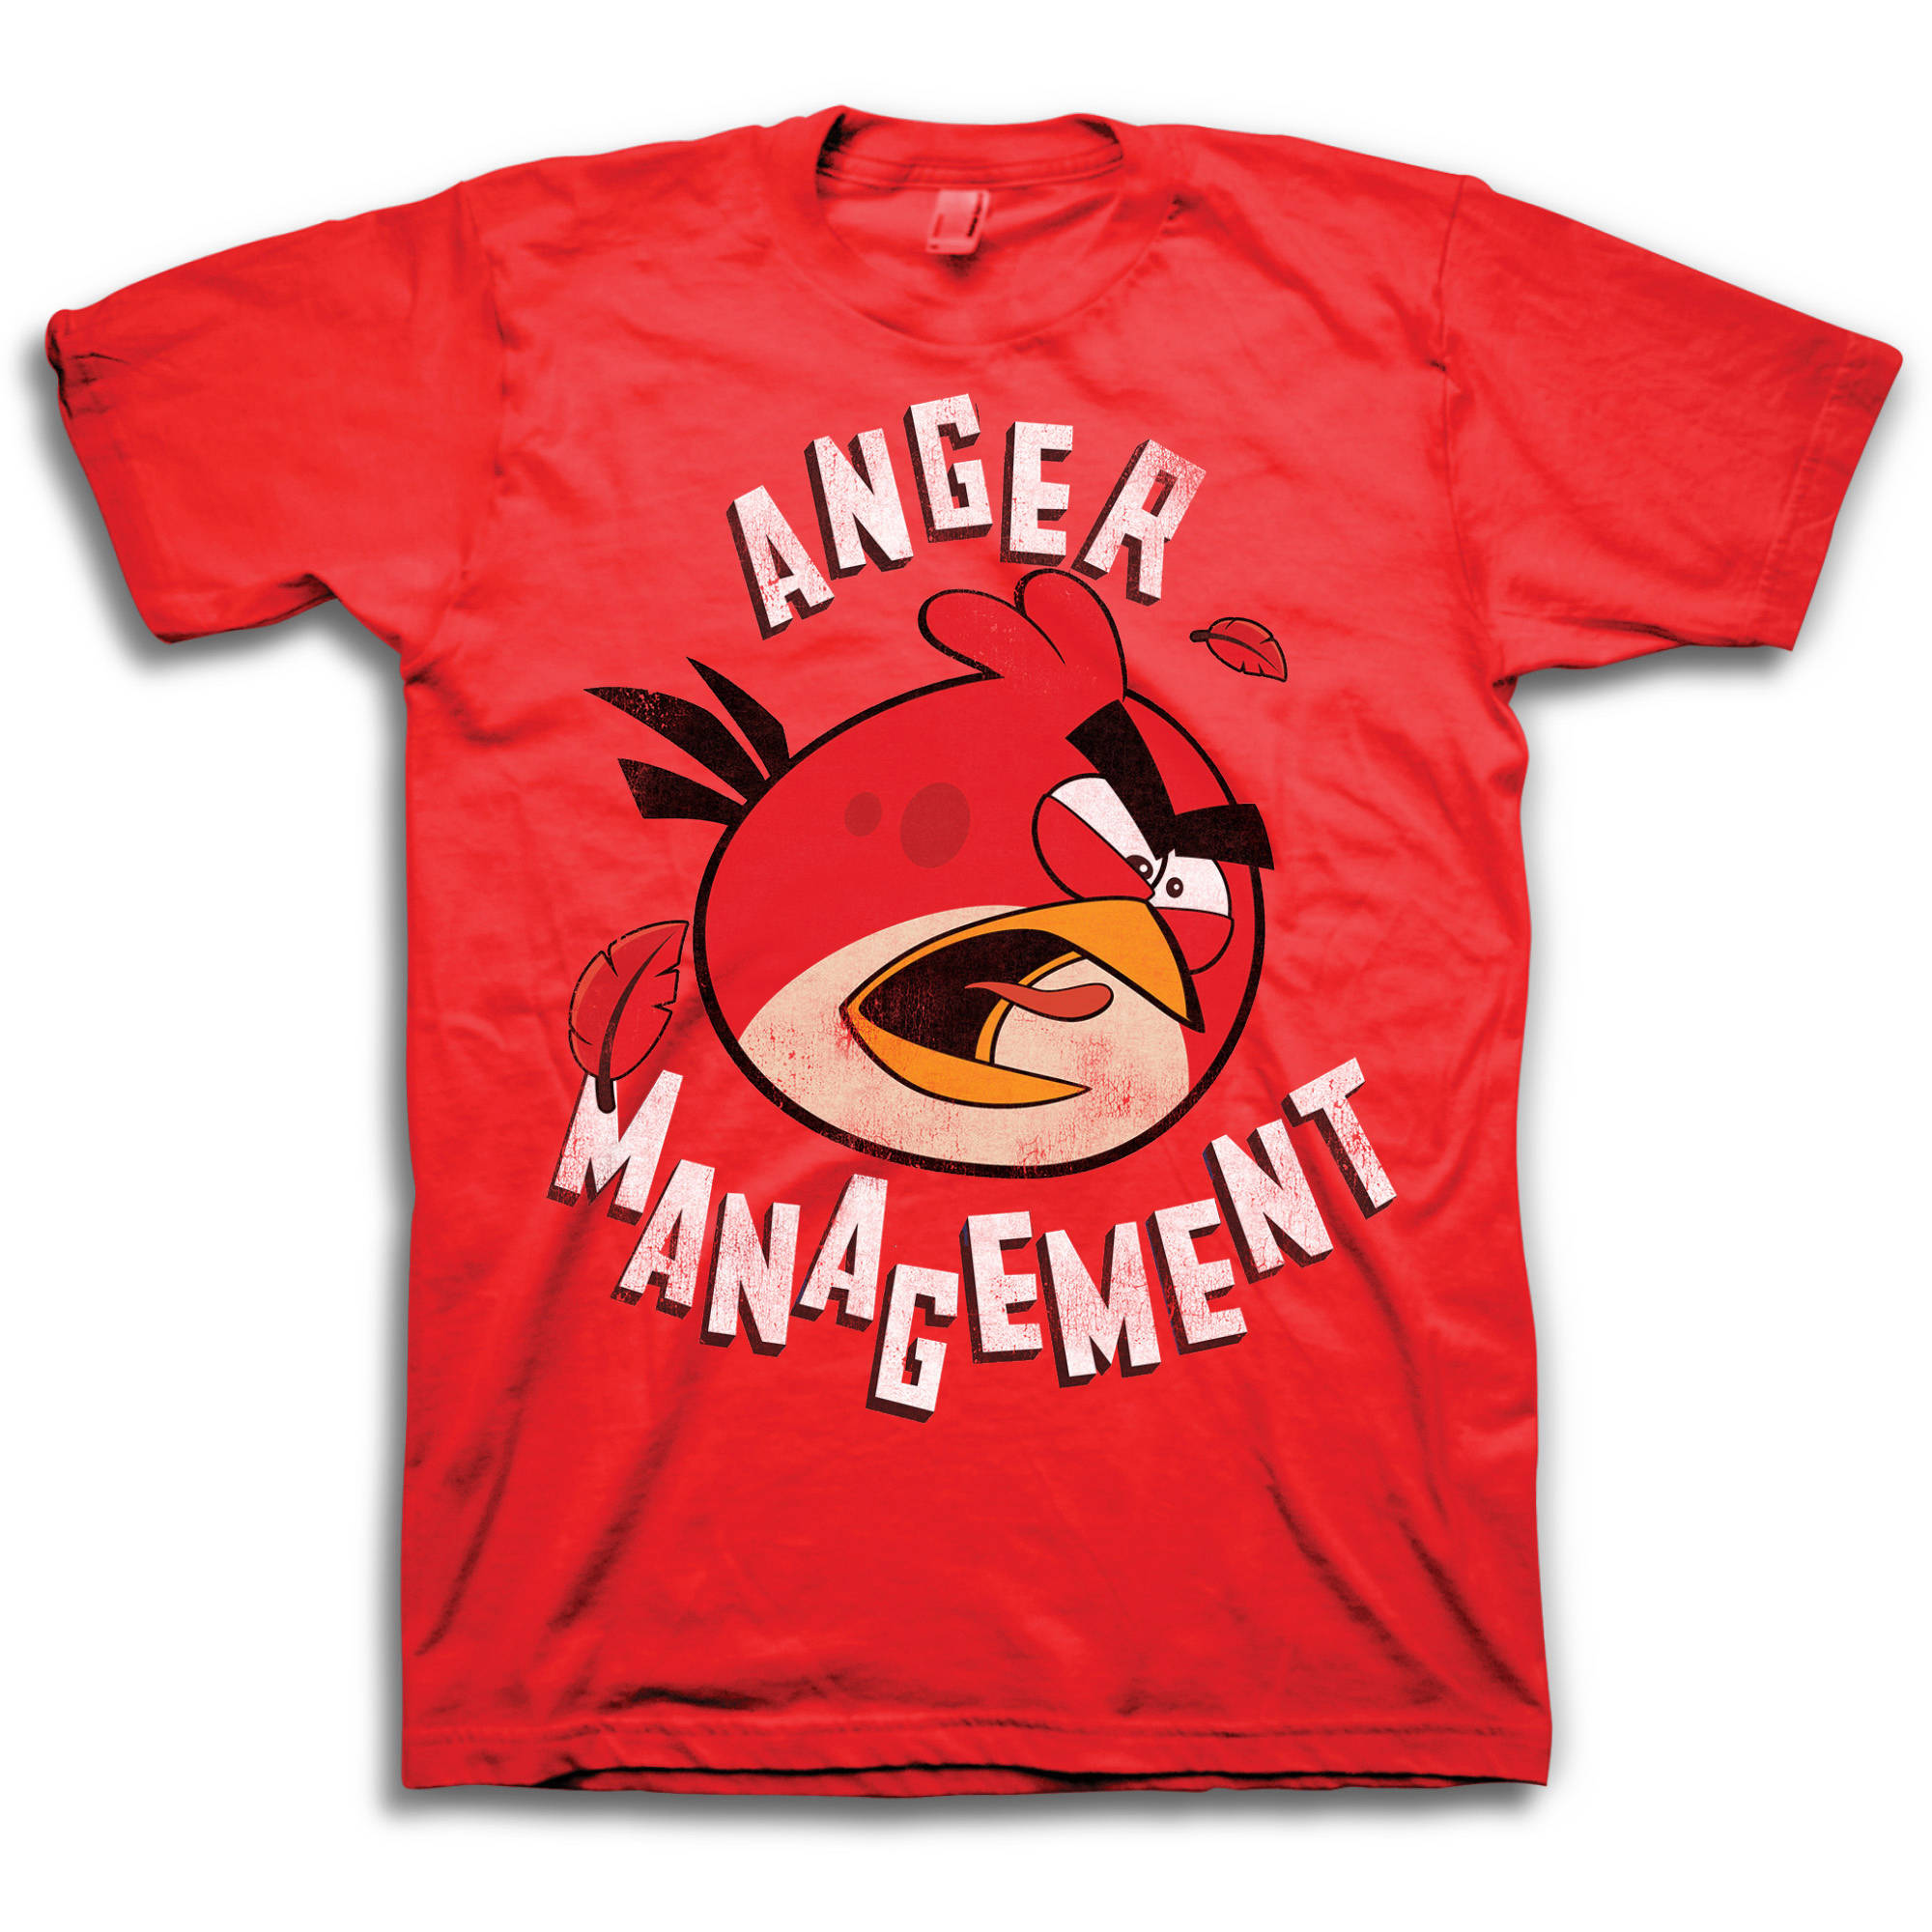 Angry Birds Anger Management Big Men's Short Sleeve Graphic Tee T-Shirt, 2XL